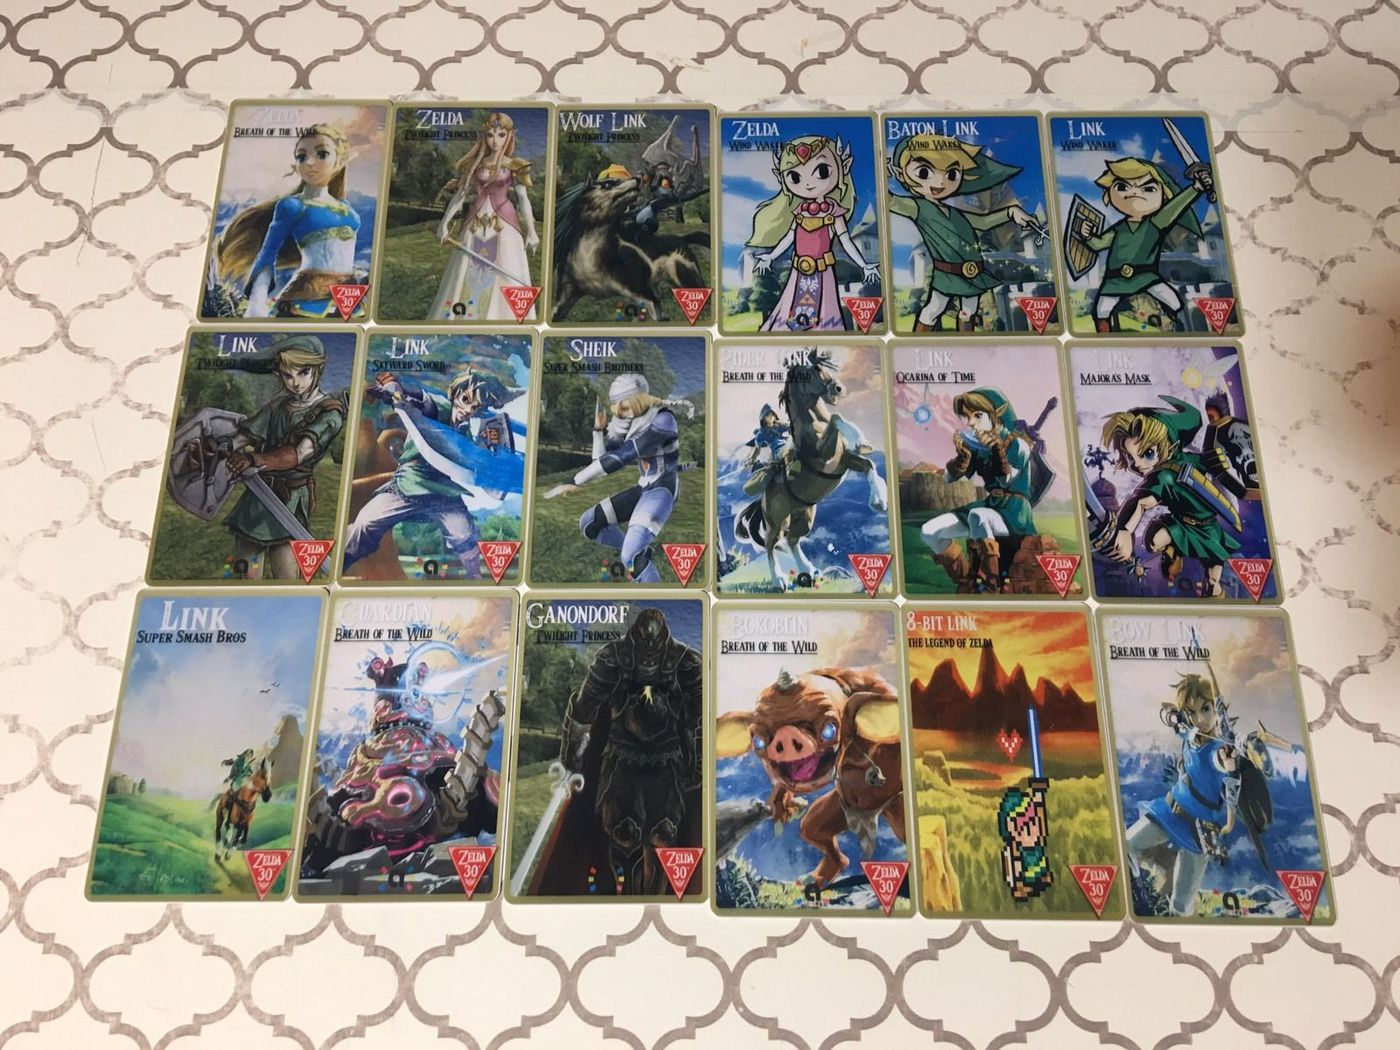 With real amiibo hard to find, Nintendo fans are making and